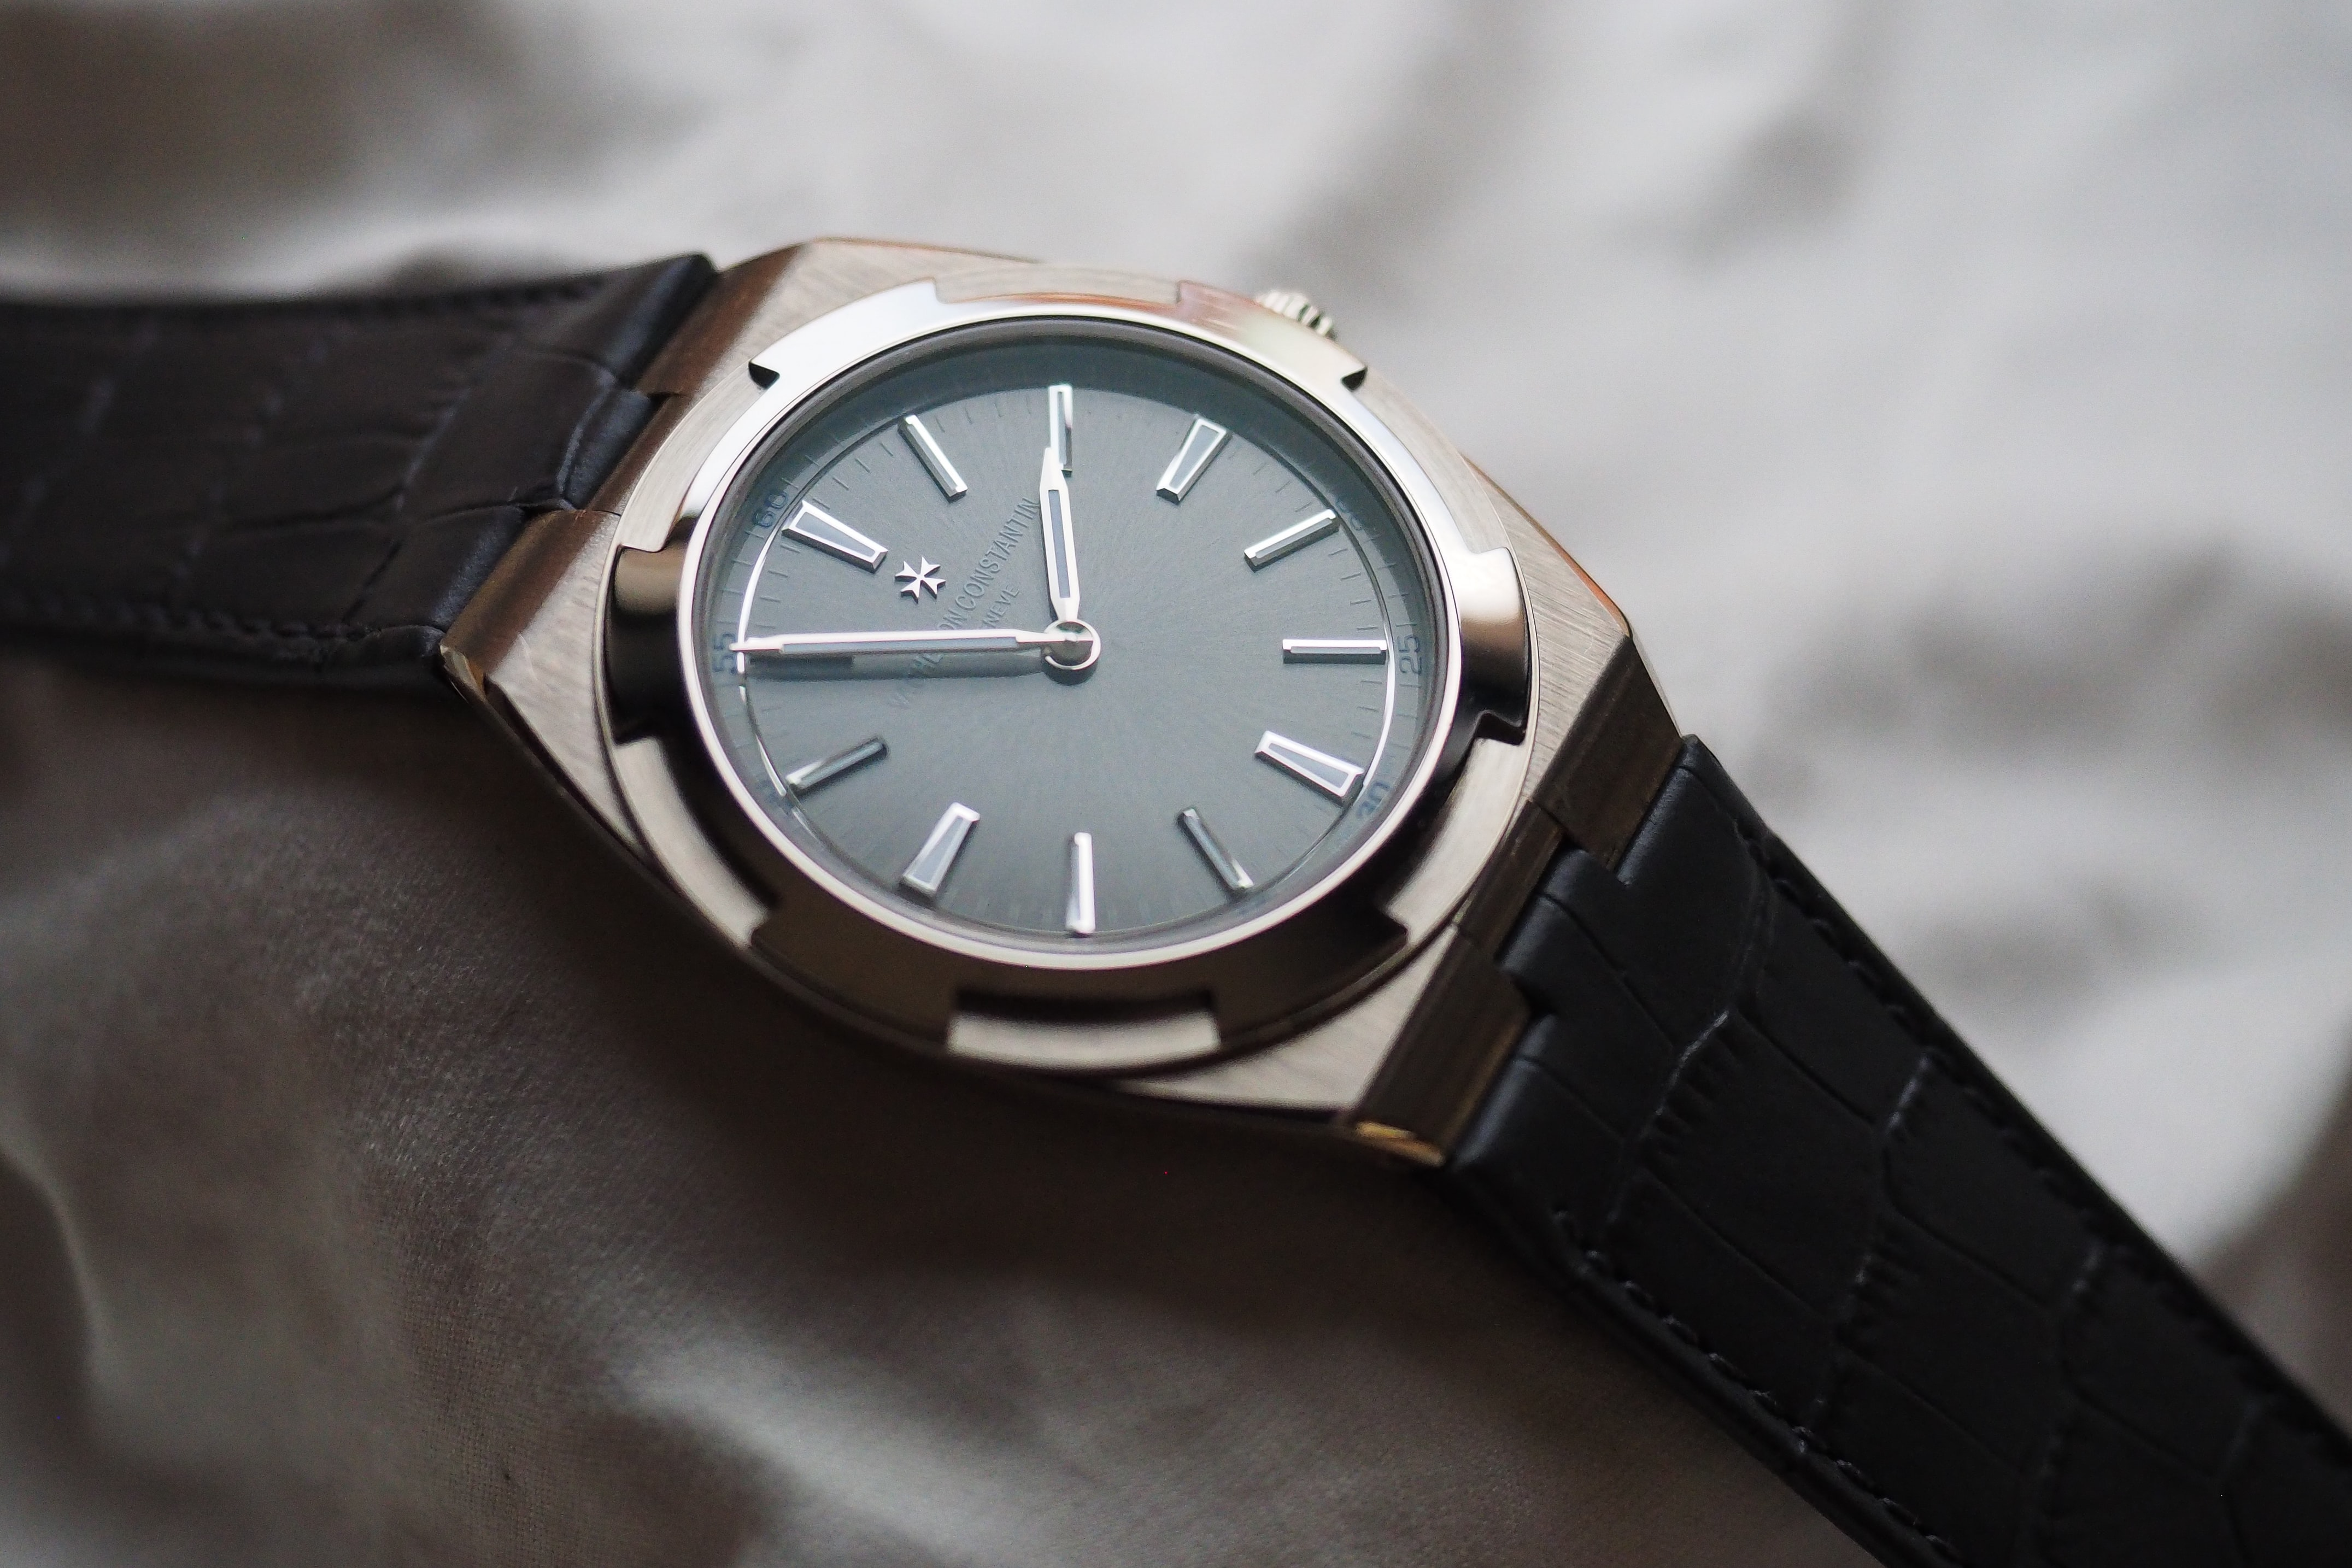 Vacheron Constantin Overseas Ultra-Thin on alligator A Week On The Wrist: The Vacheron Constantin Overseas Ultra-Thin, And Some Highly Subjective Thoughts On The Perfect Watch A Week On The Wrist: The Vacheron Constantin Overseas Ultra-Thin, And Some Highly Subjective Thoughts On The Perfect Watch P4280108